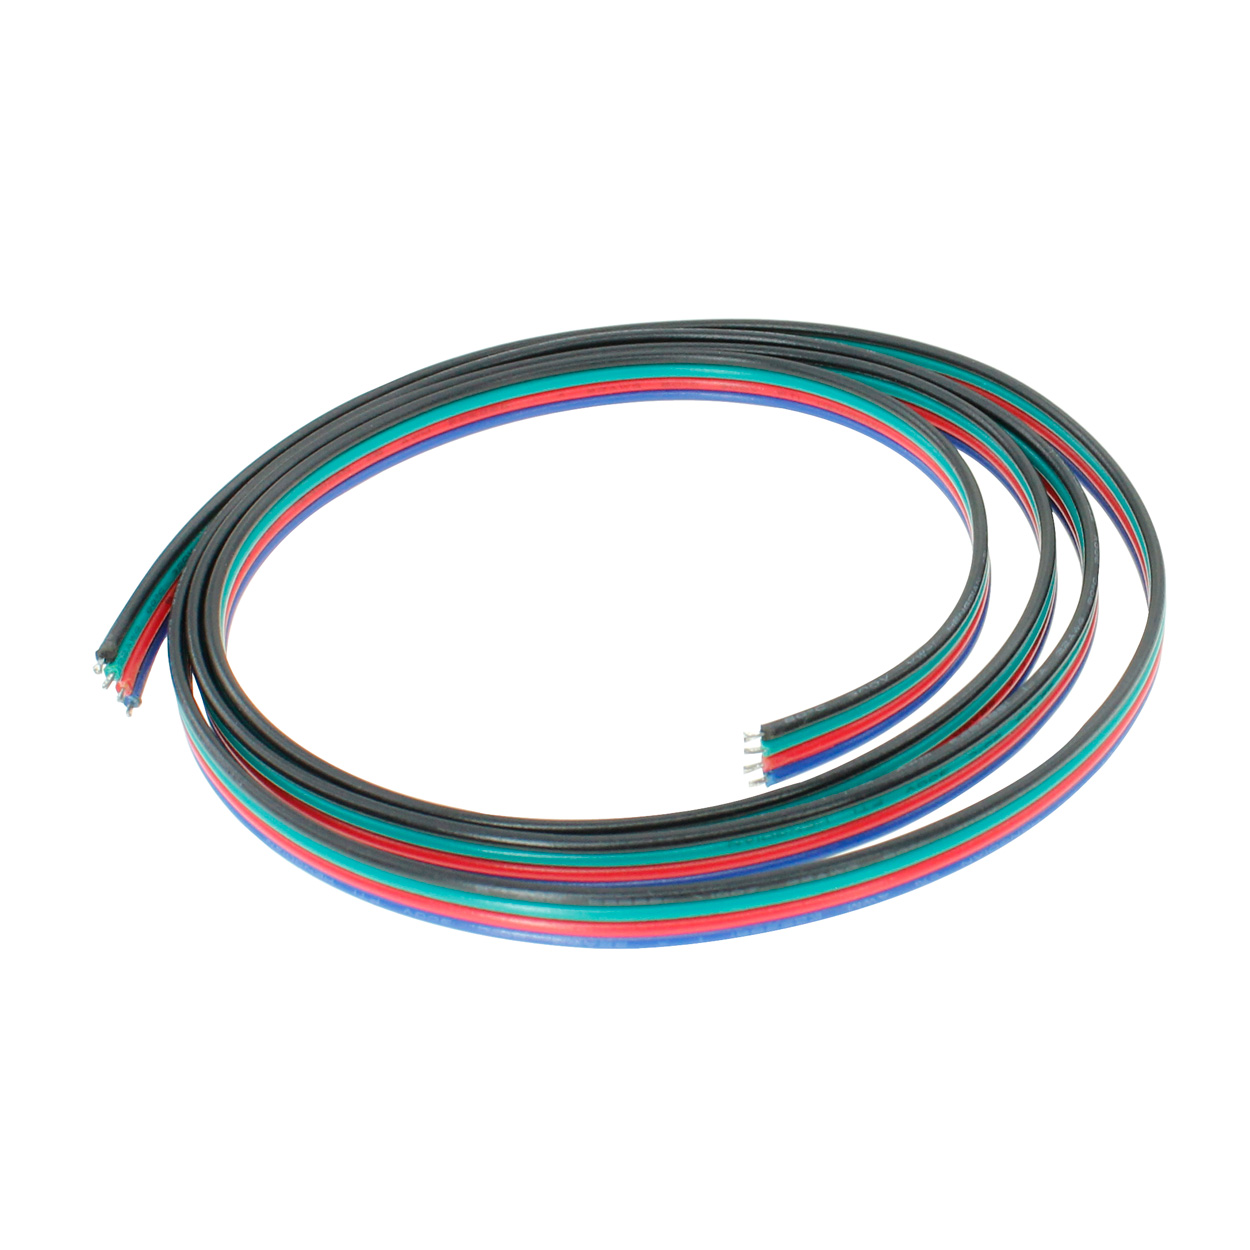 medium resolution of 4 wire 18awg power cable for rgb led light strips 20 meter 66ft pi manufacturing